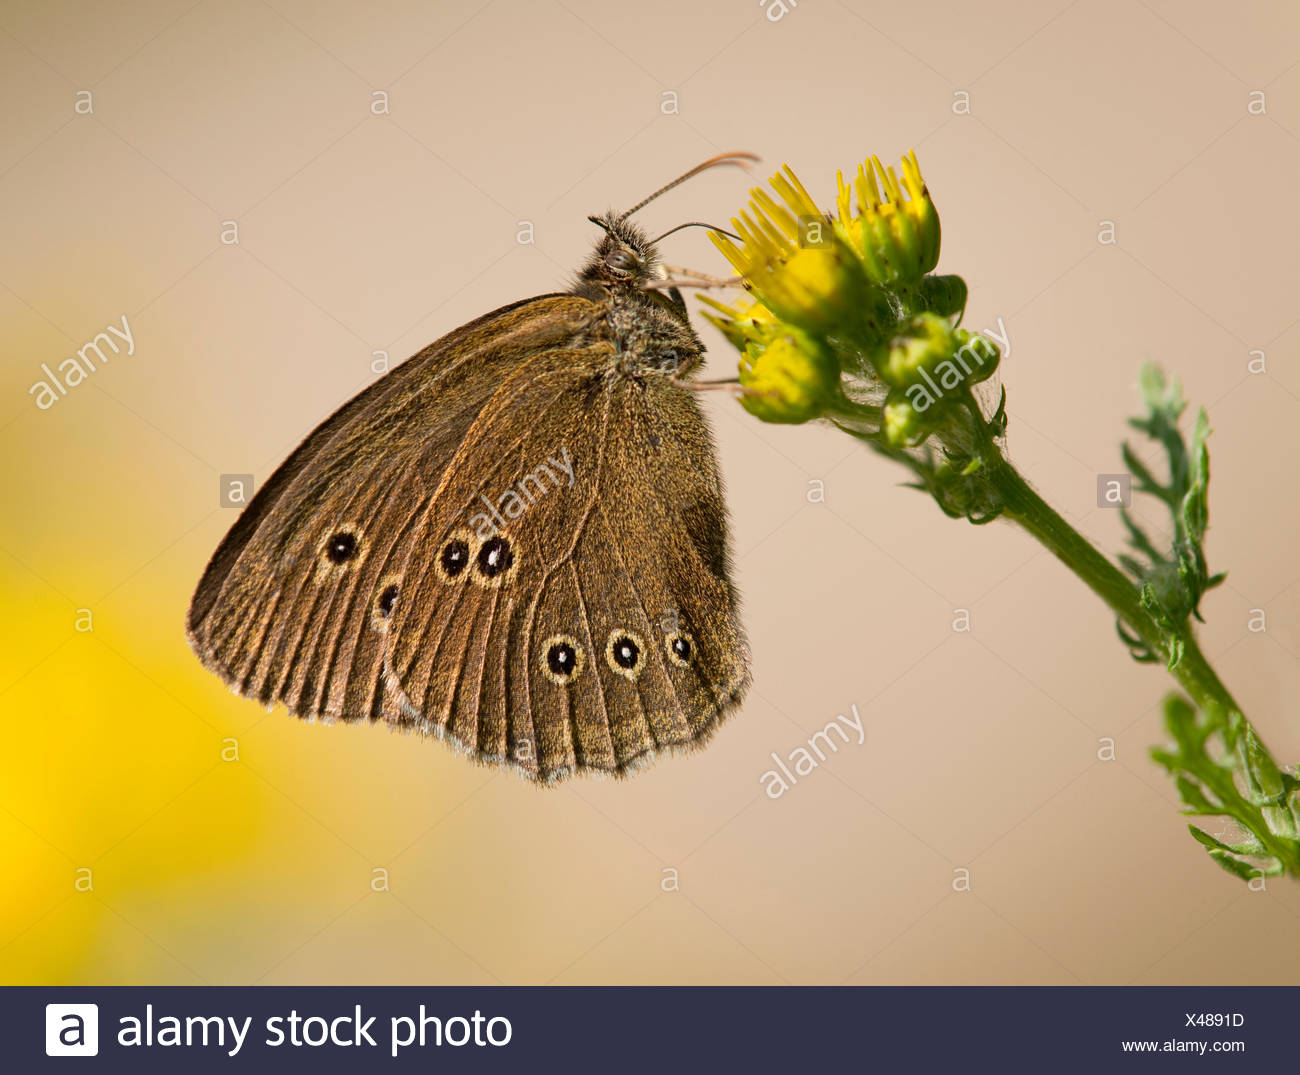 Ringlet (Aphantopus hyperantus) sucking nectar, Lower Saxony, Germany - Stock Image